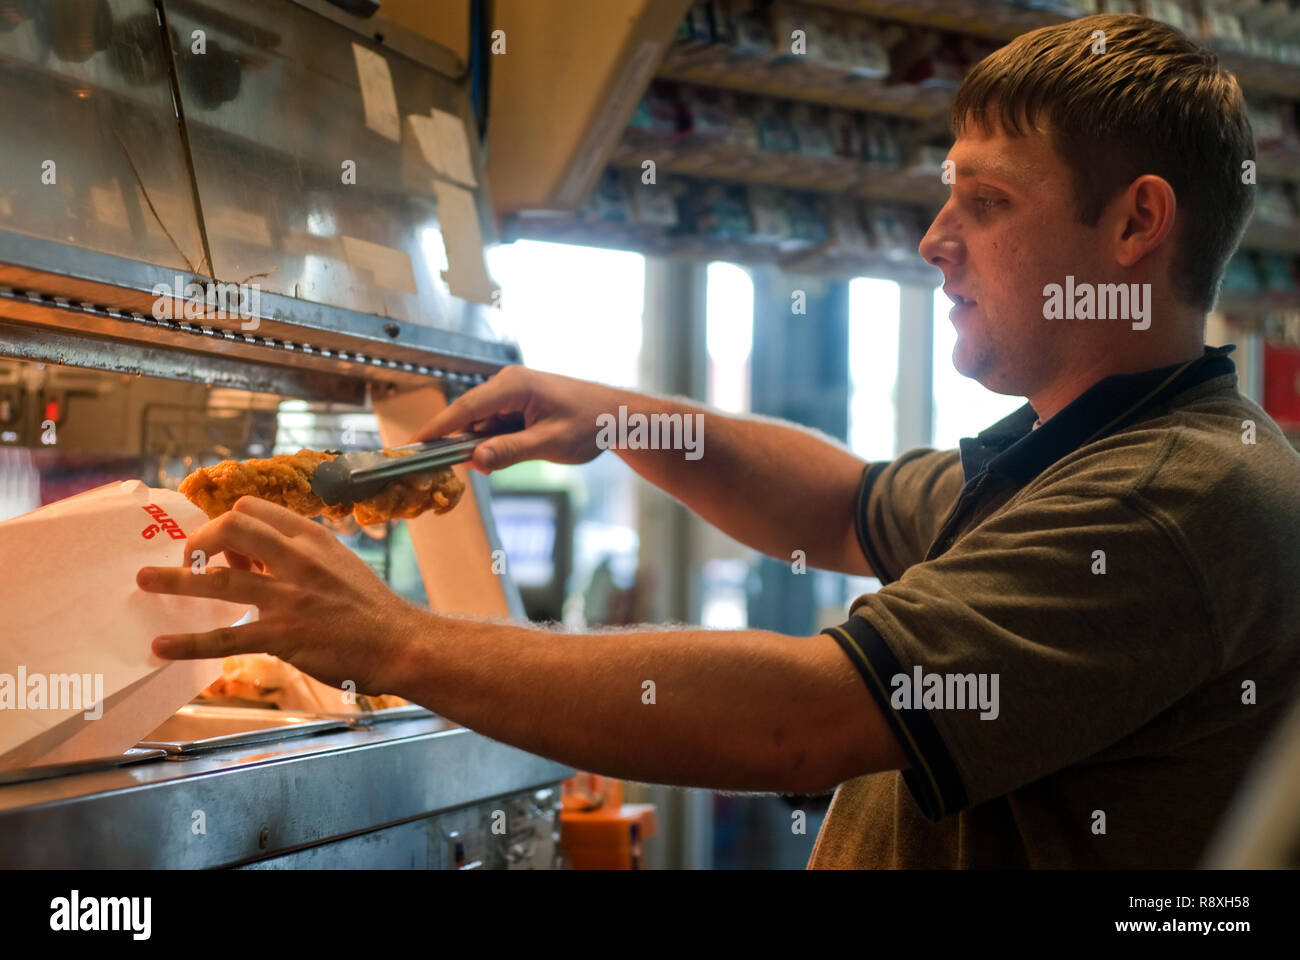 A gas station employee places fried chicken strips in a bag, July 17, 2011, in Oxford, Mississippi. - Stock Image